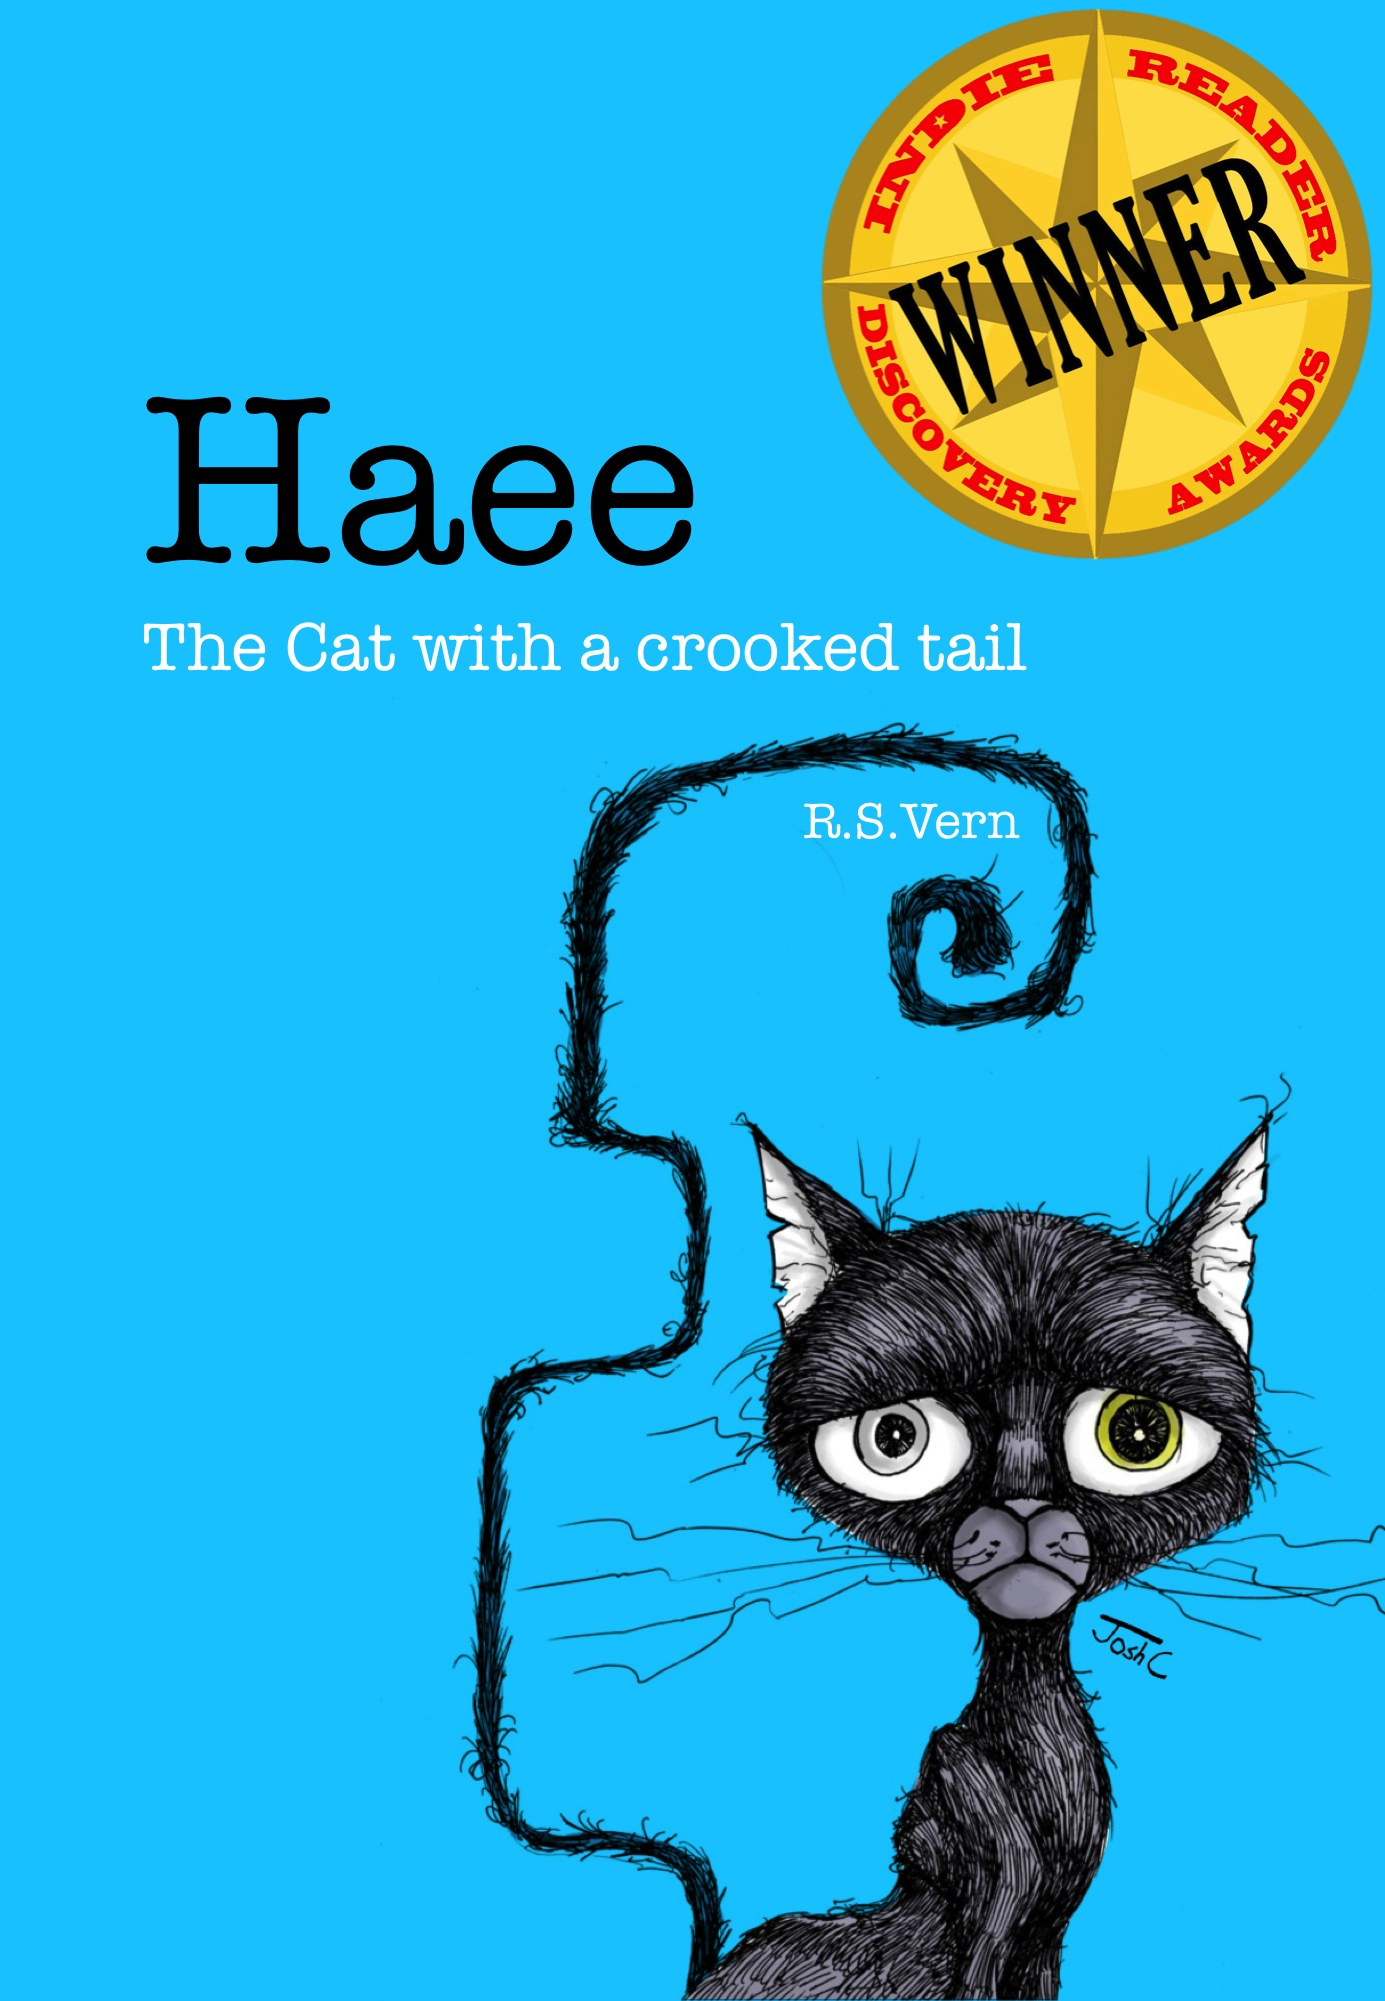 Haee The cat with a crooked tail (Haee and the other middlings, #1)